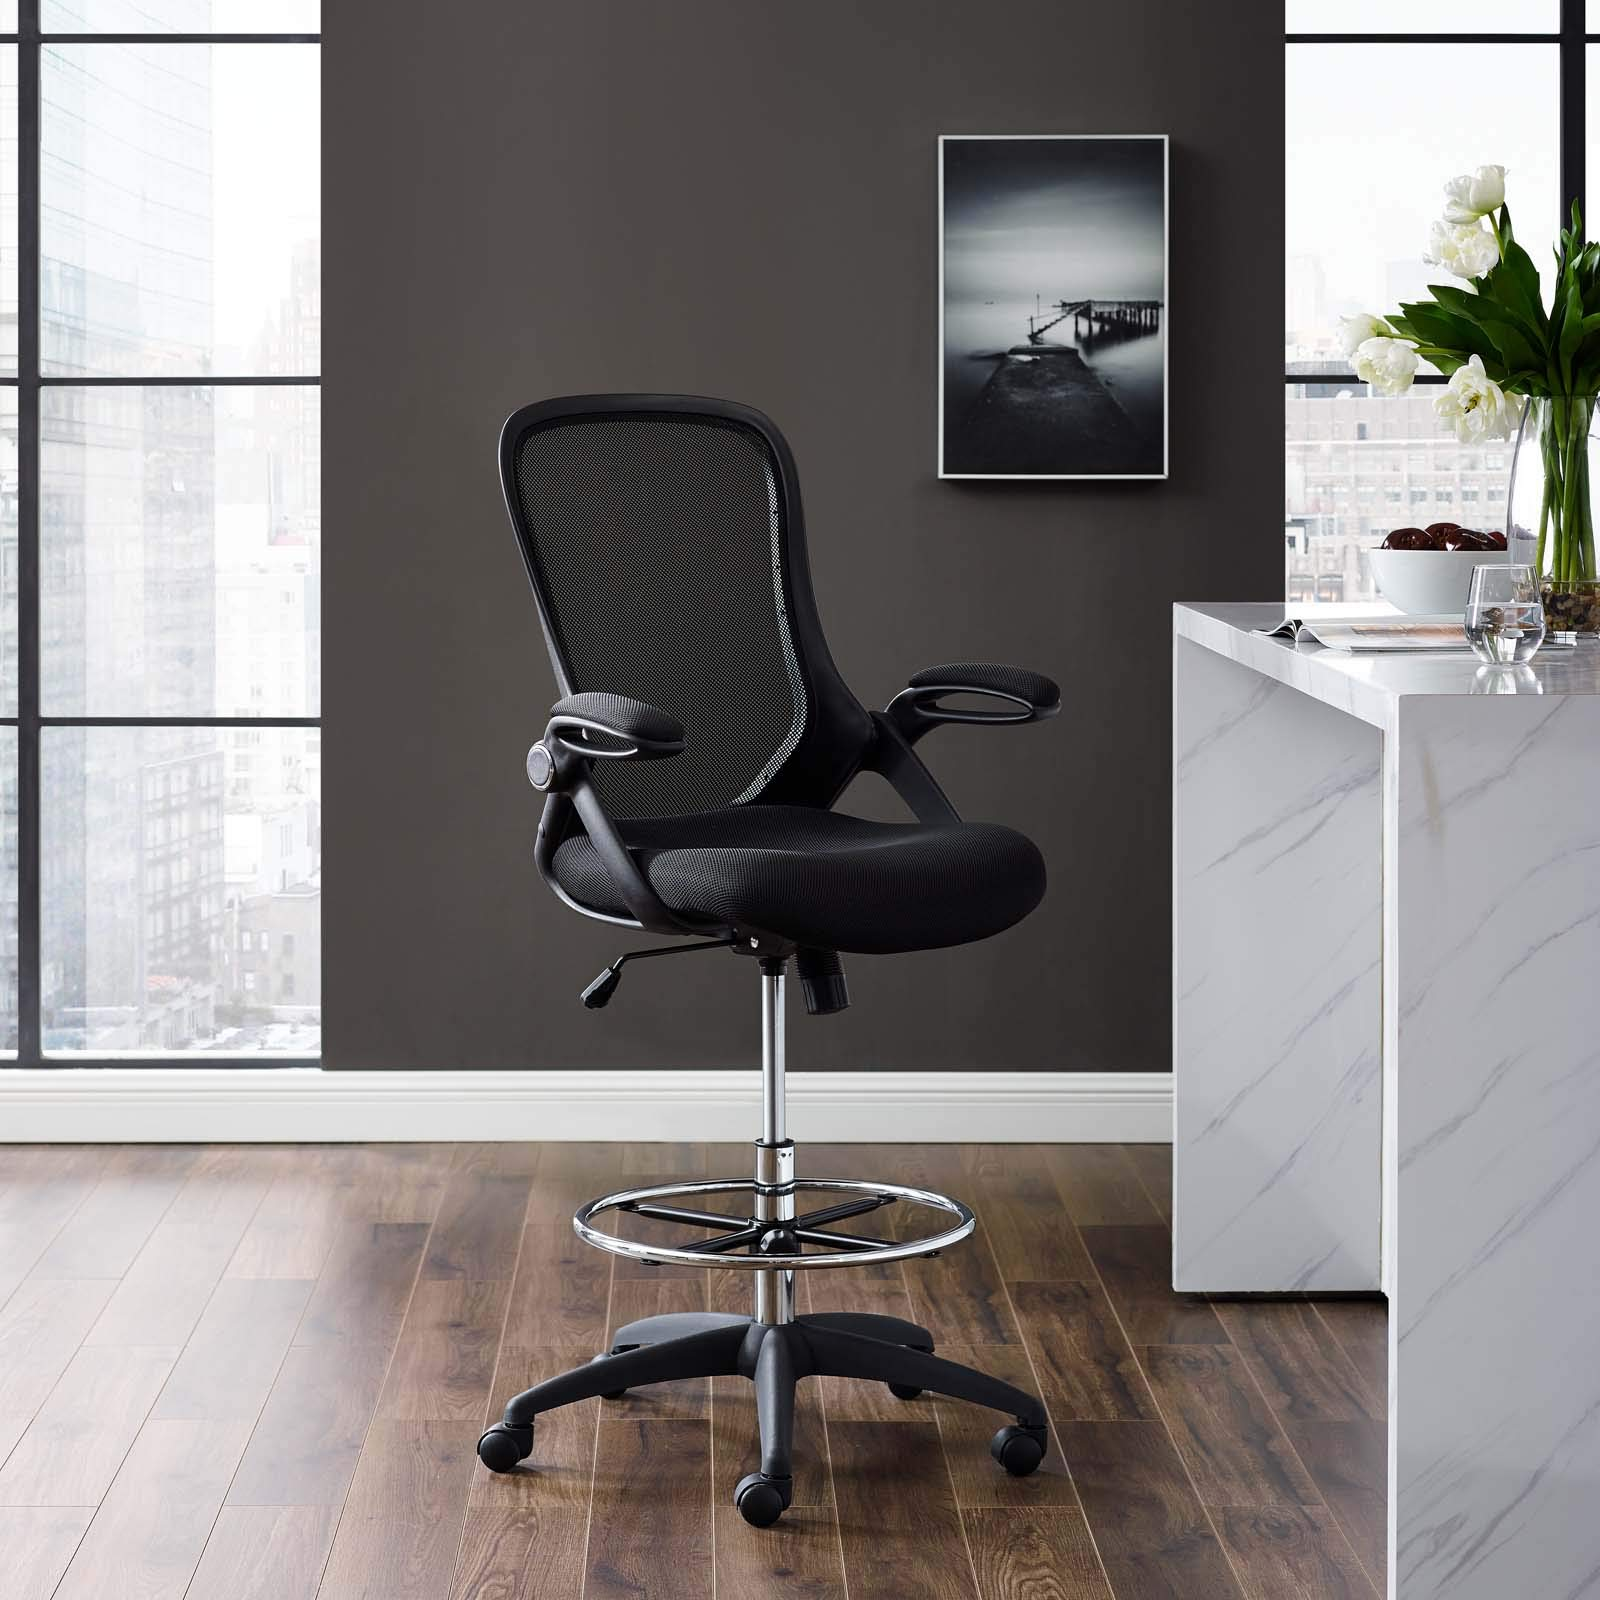 Modway Assert Drafting Black-Tall Office Chair for Adjustable Standing Desks by Modway